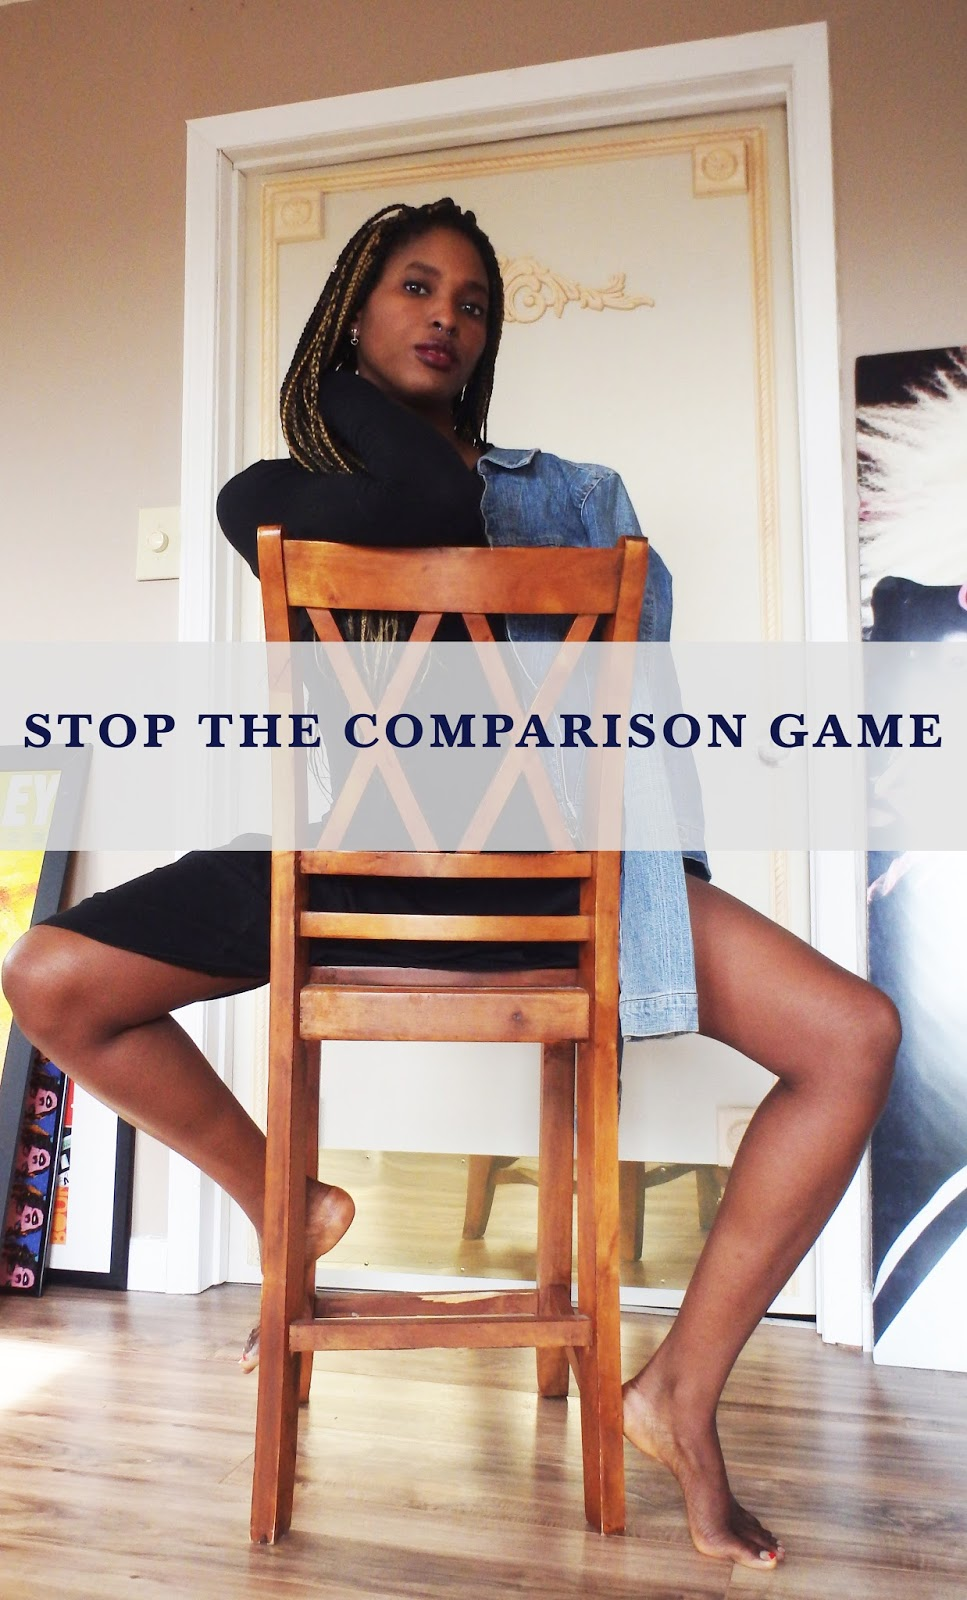 Does comparing ourselves to others do us more justice or harm?